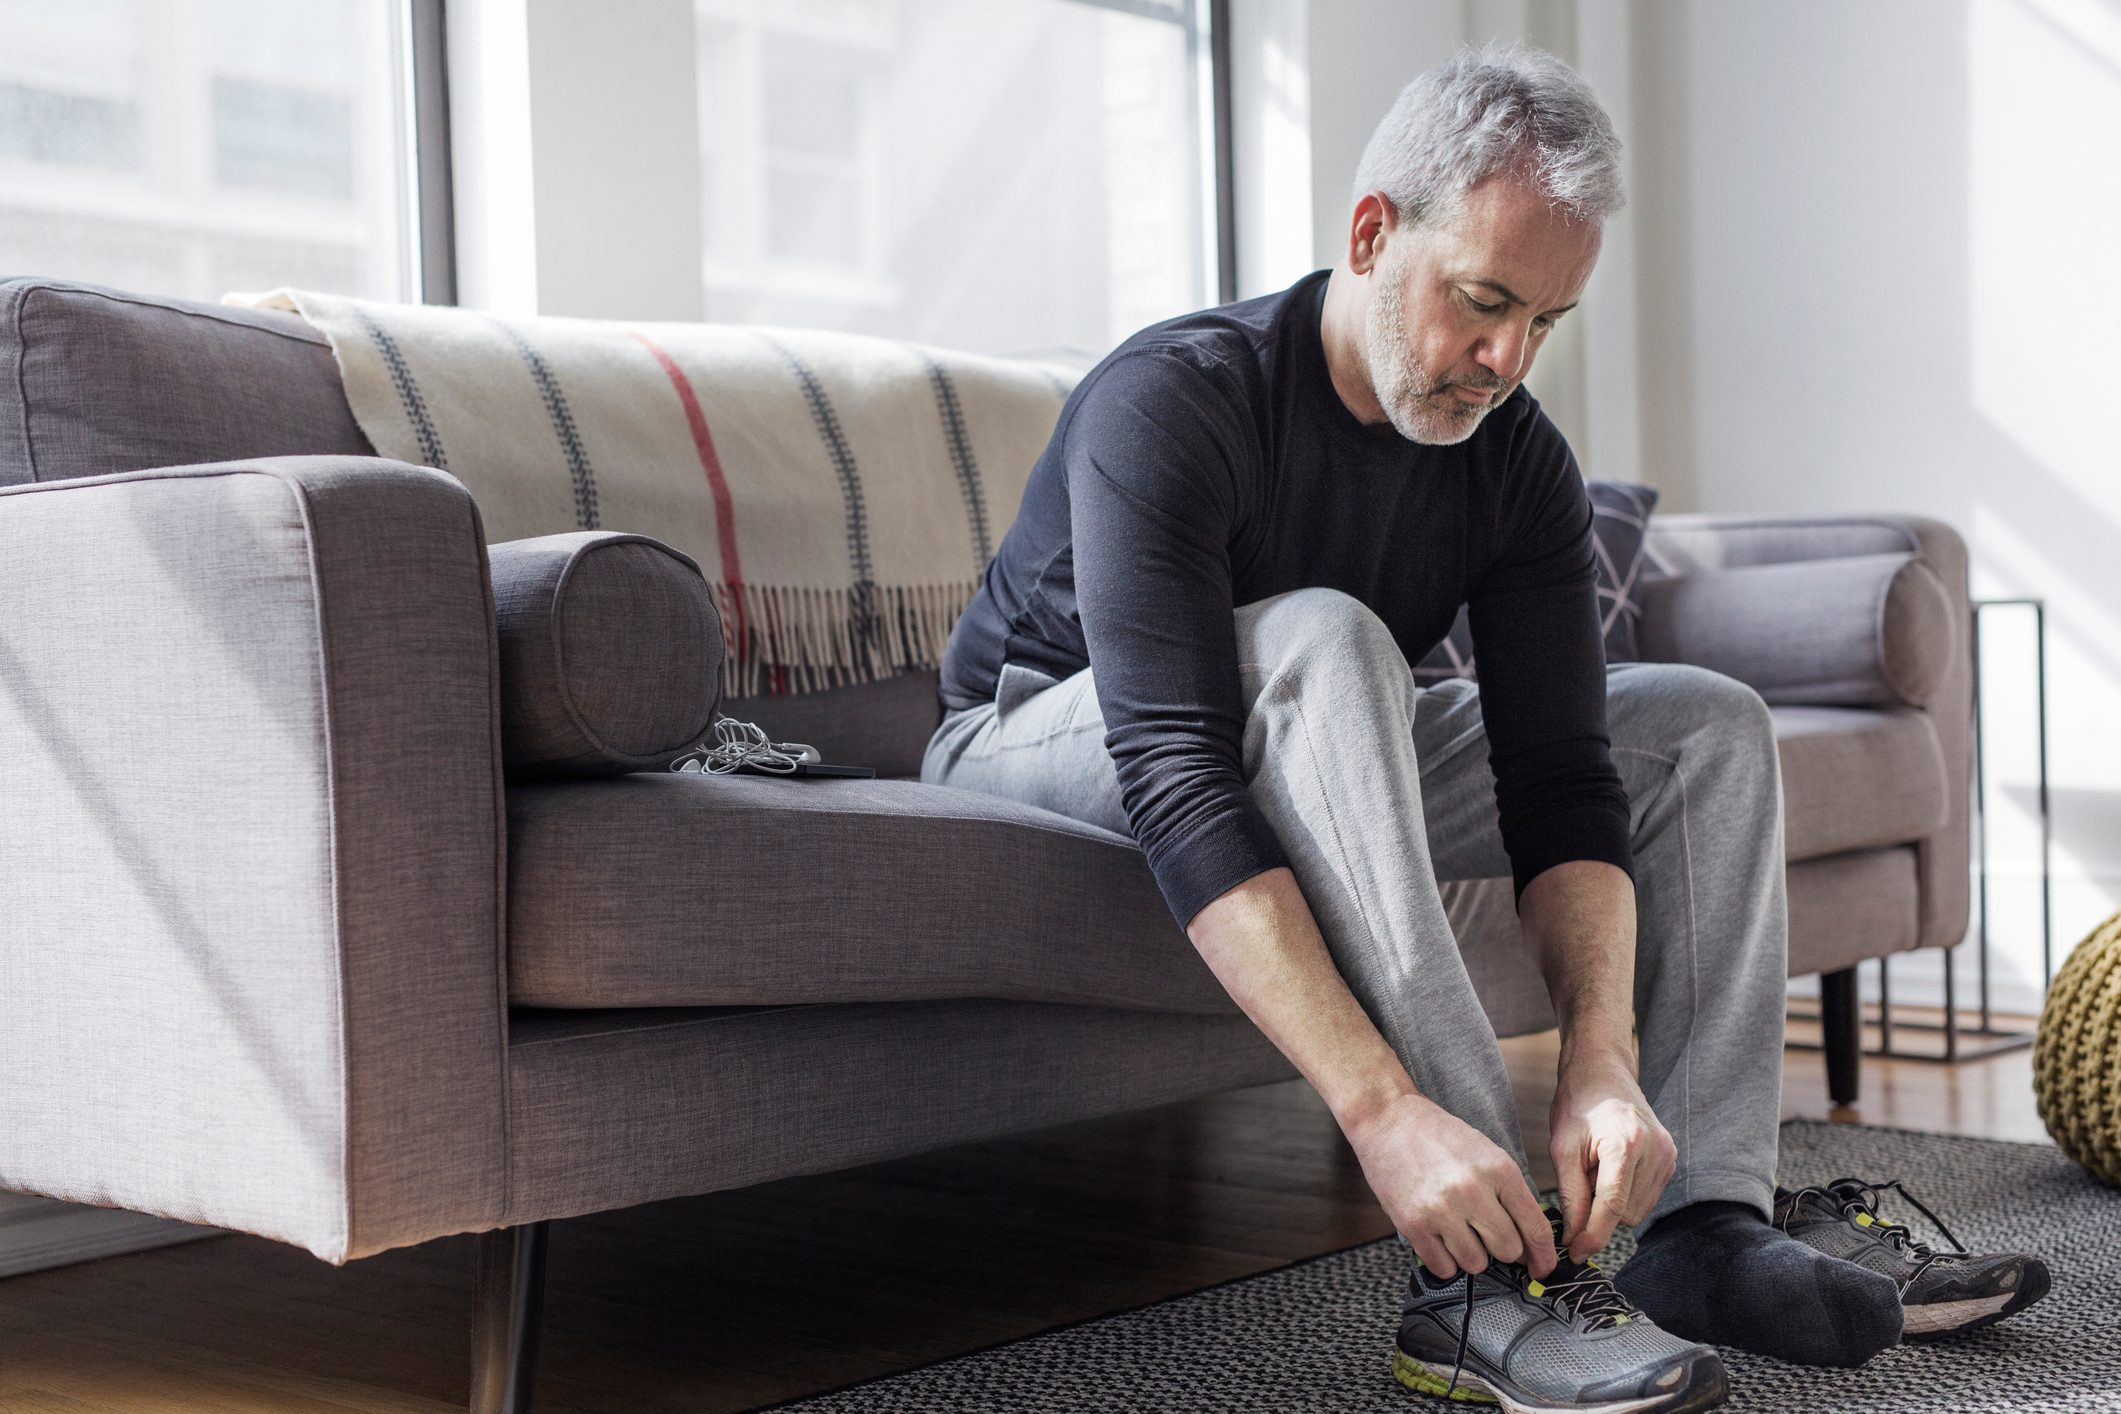 Full length of mature man wearing sports shoe at home